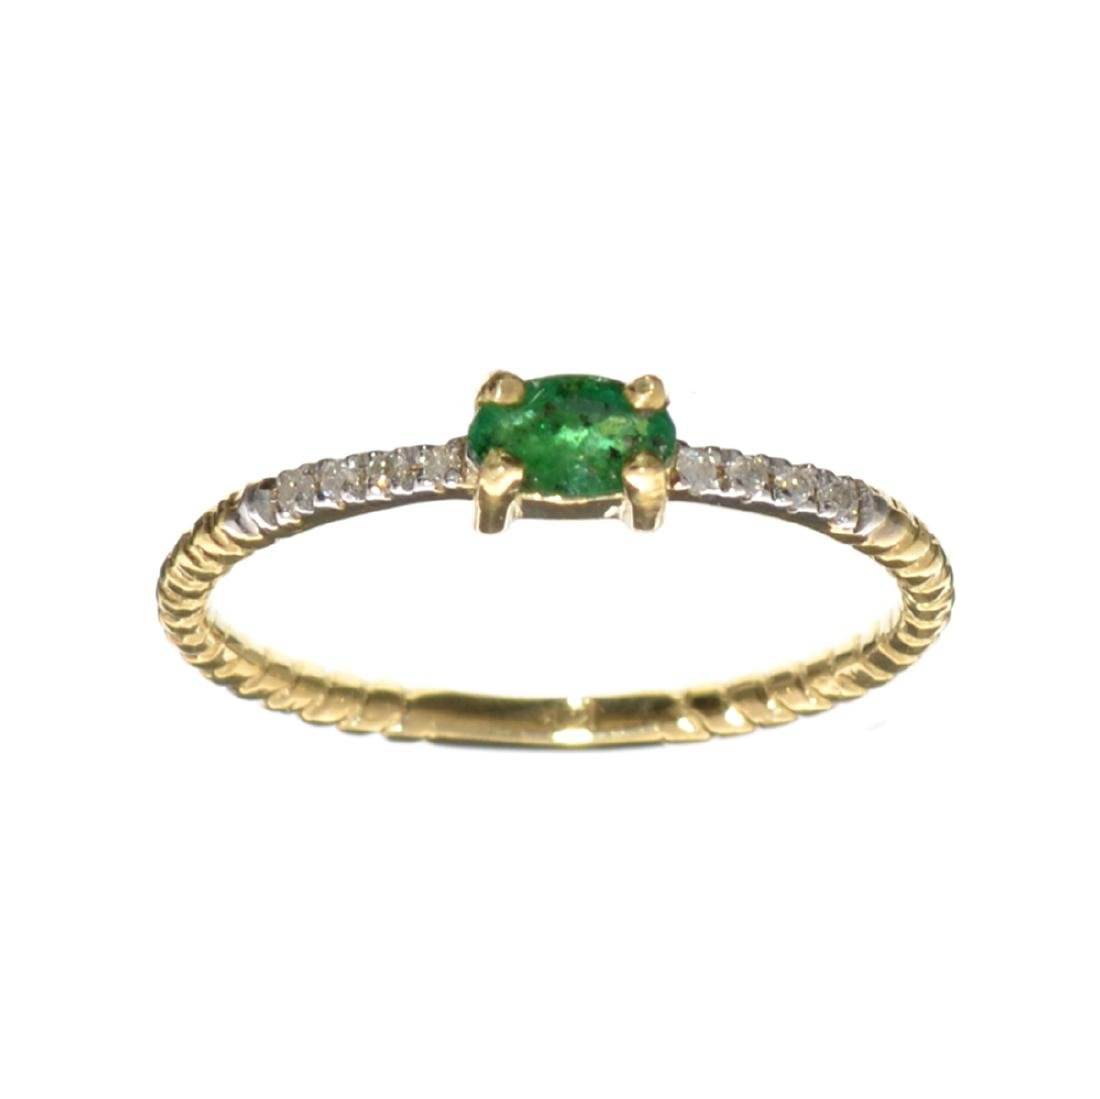 APP: 0.7k Fine Jewelry 14 KT Gold, 0.20CT Emerald and